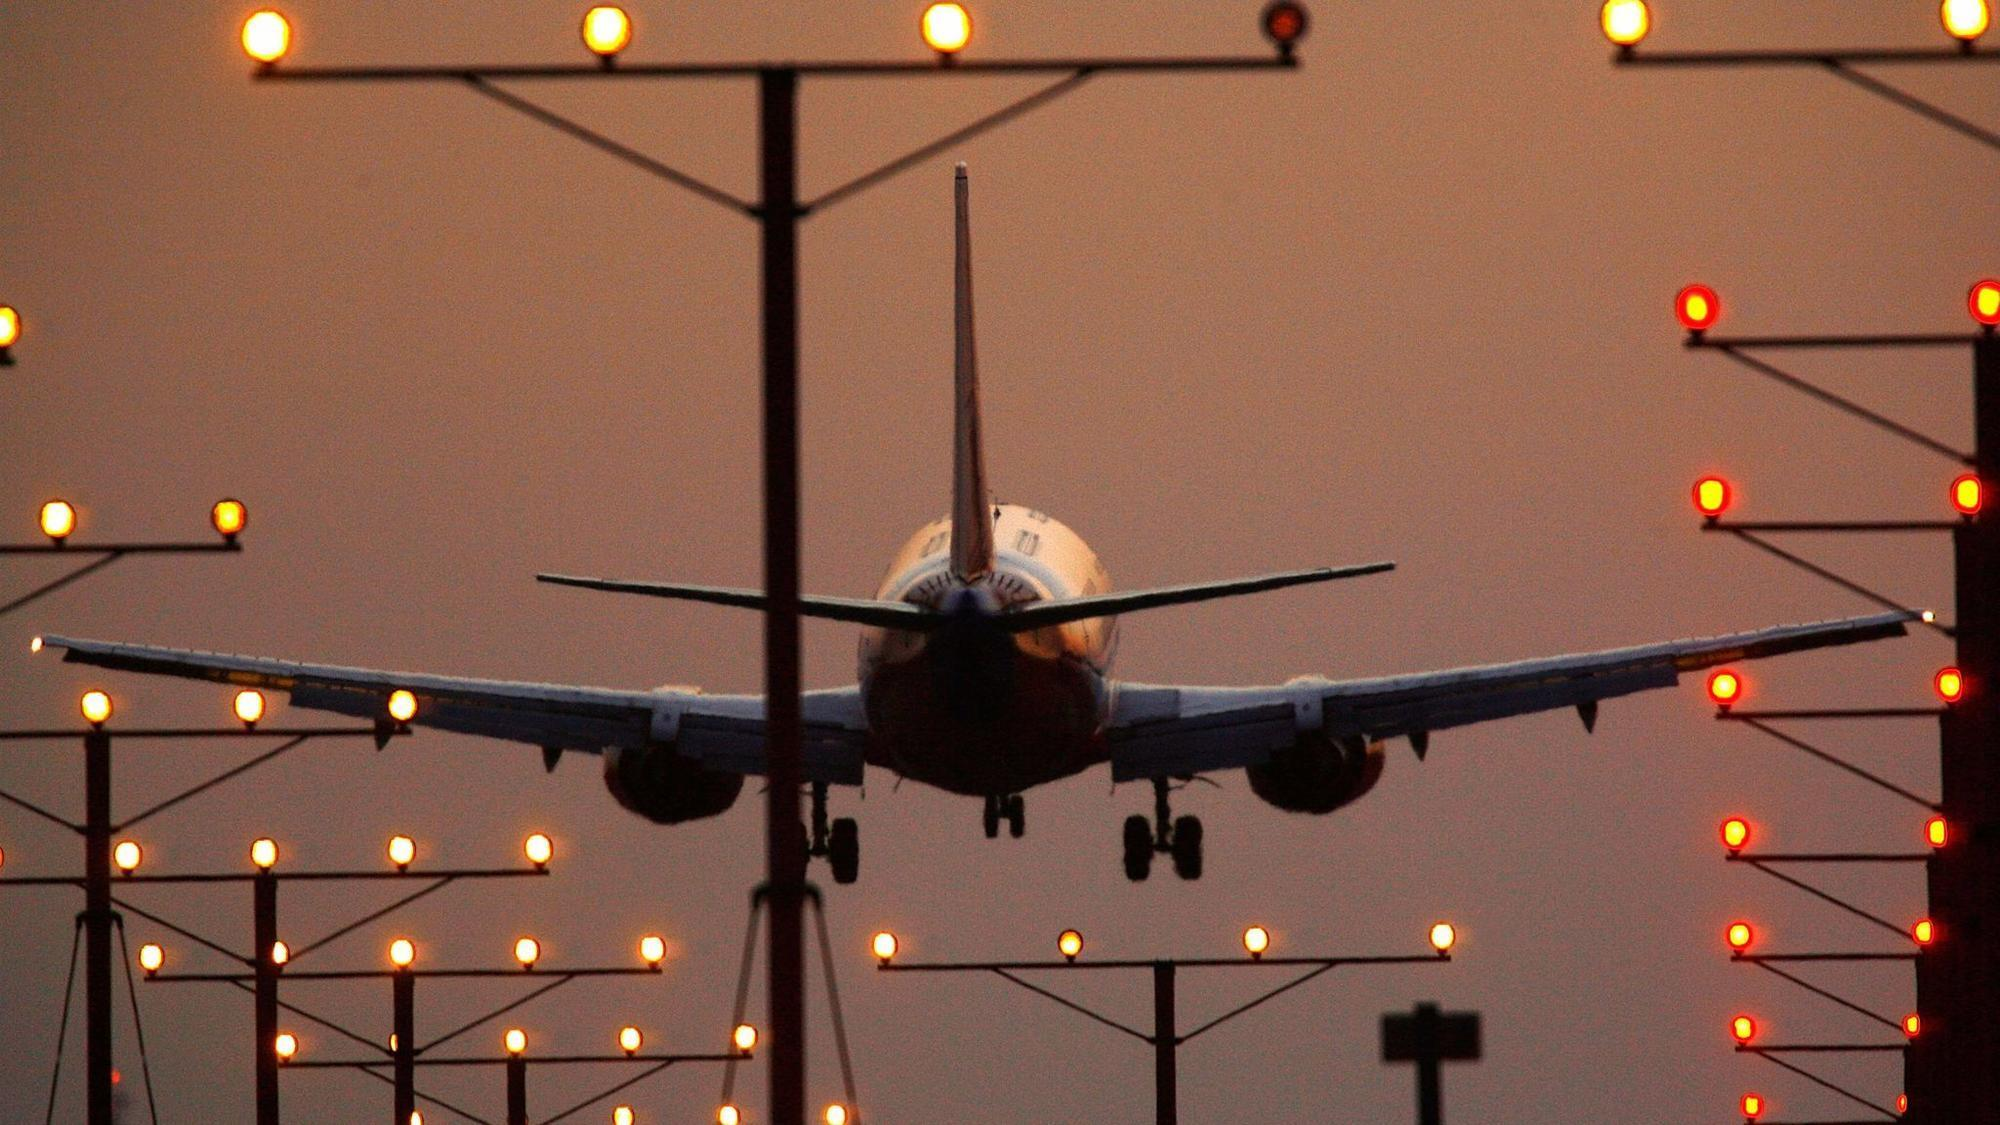 'It's a Superhighway Above Our Heads': South L.A. Residents Vexed By New LAX Flight Paths